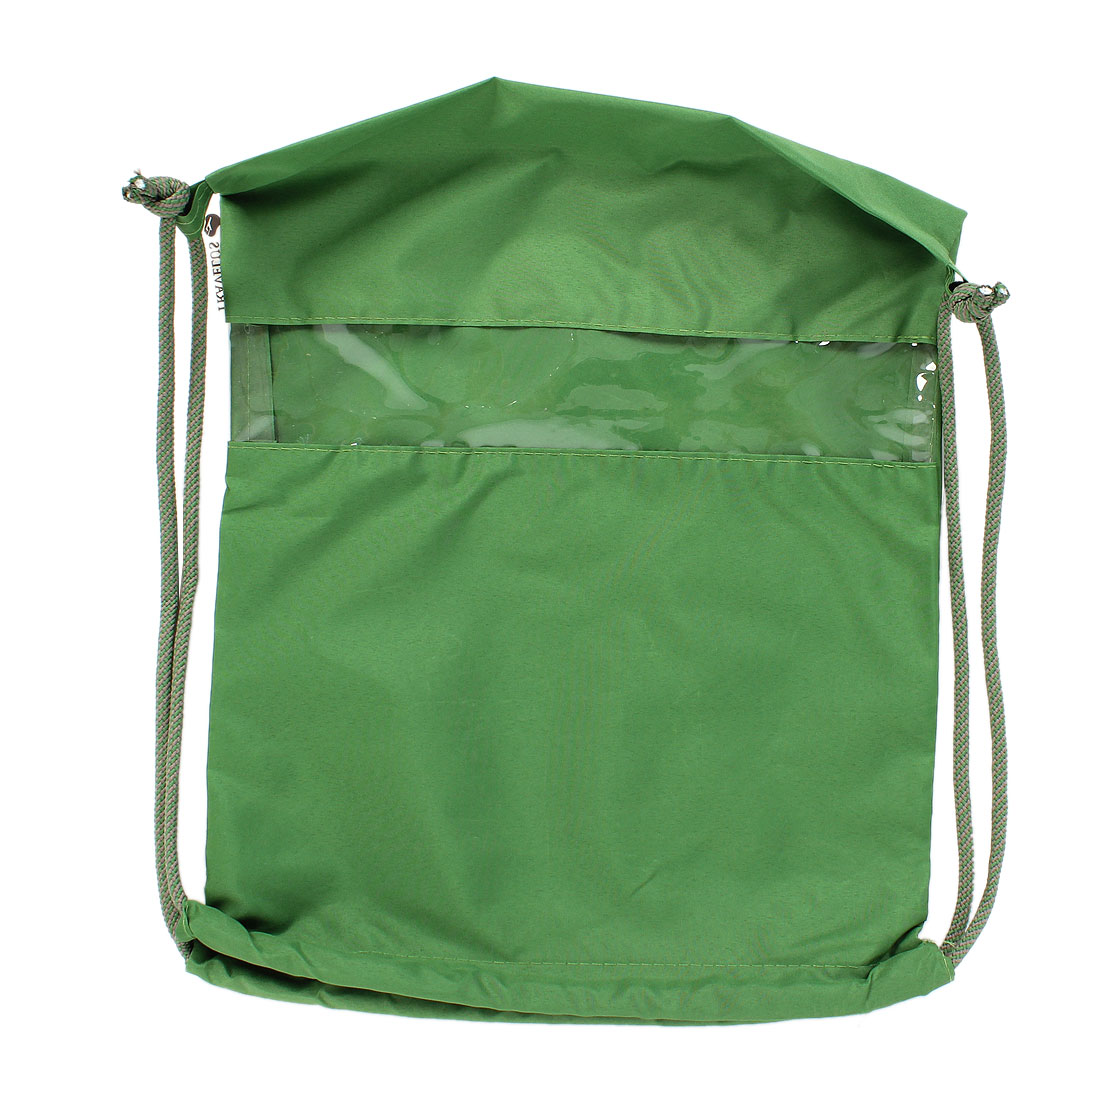 Green Drawstring Beach Gym Clothes Storage Shoulder Bag Back Pack